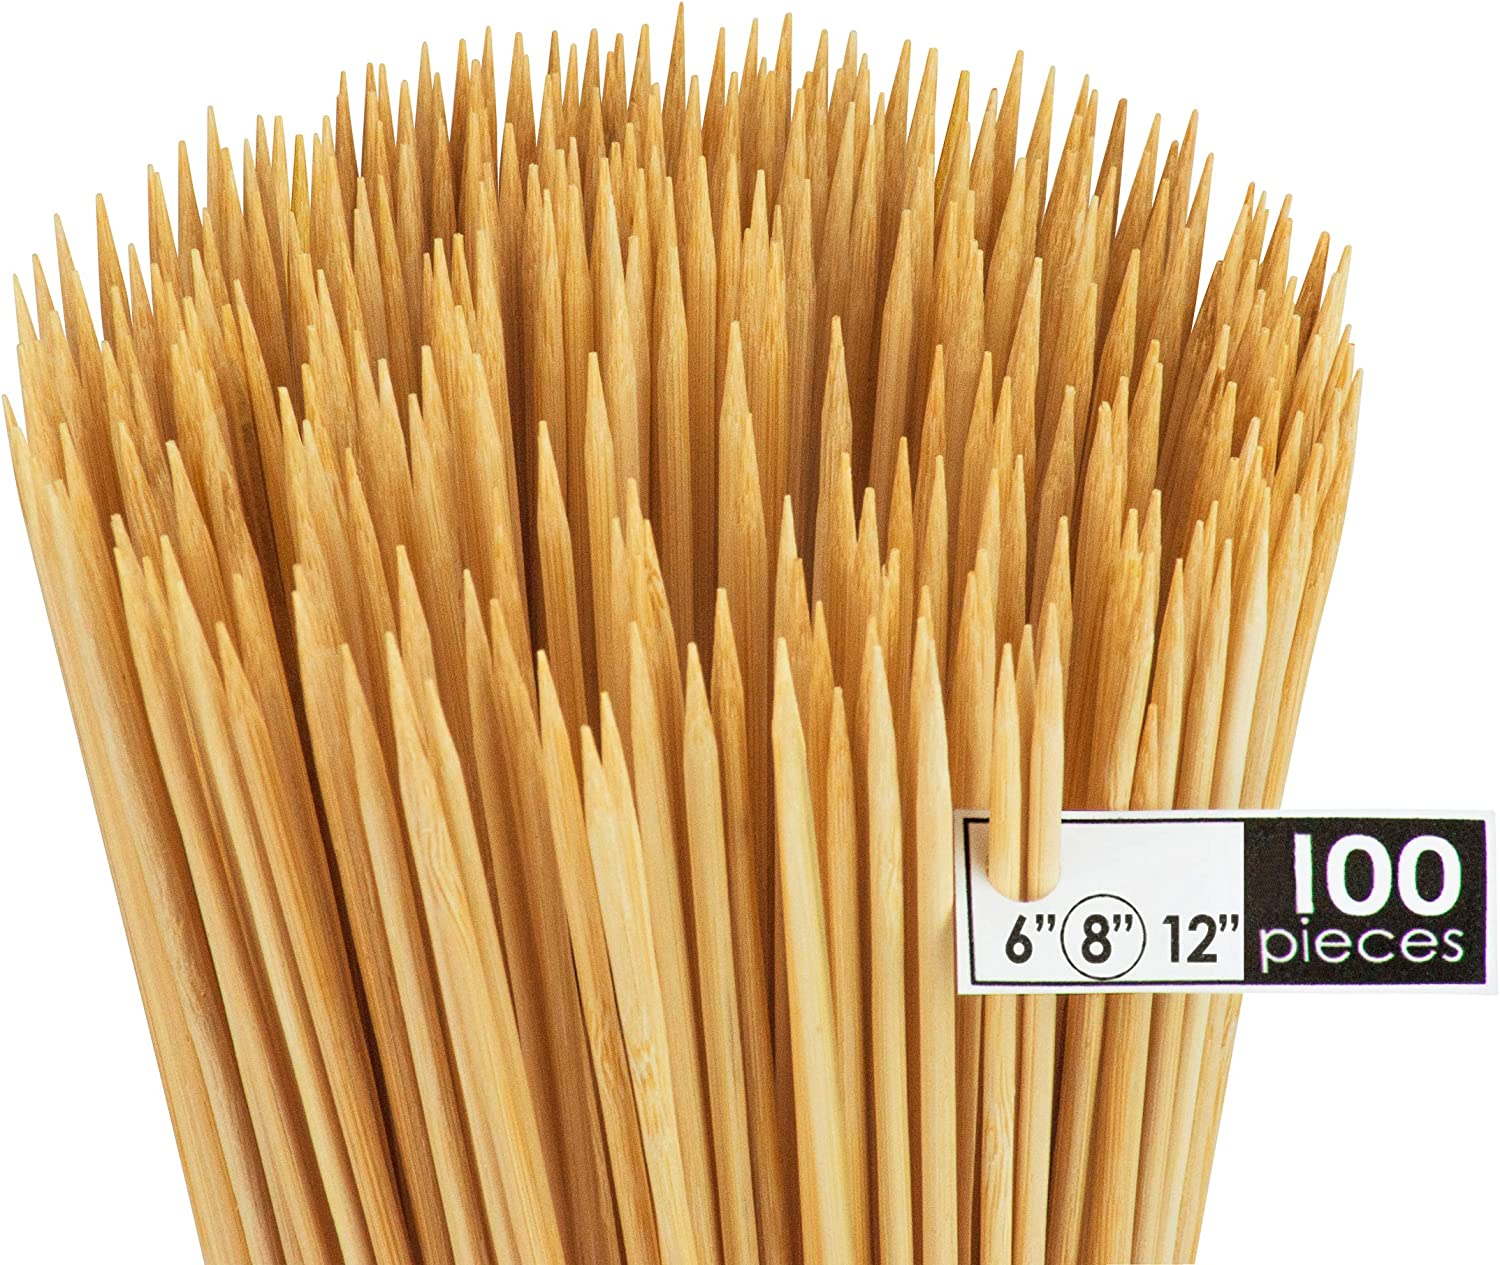 DecorRack Natural Bamboo Skewer Sticks, Natural Wooden Barbecue Kabob Skewers, Best for Grill, BBQ, Kebab, Marshmallow Roasting or Fruit Sticks, 8 inch (Pack of 100)